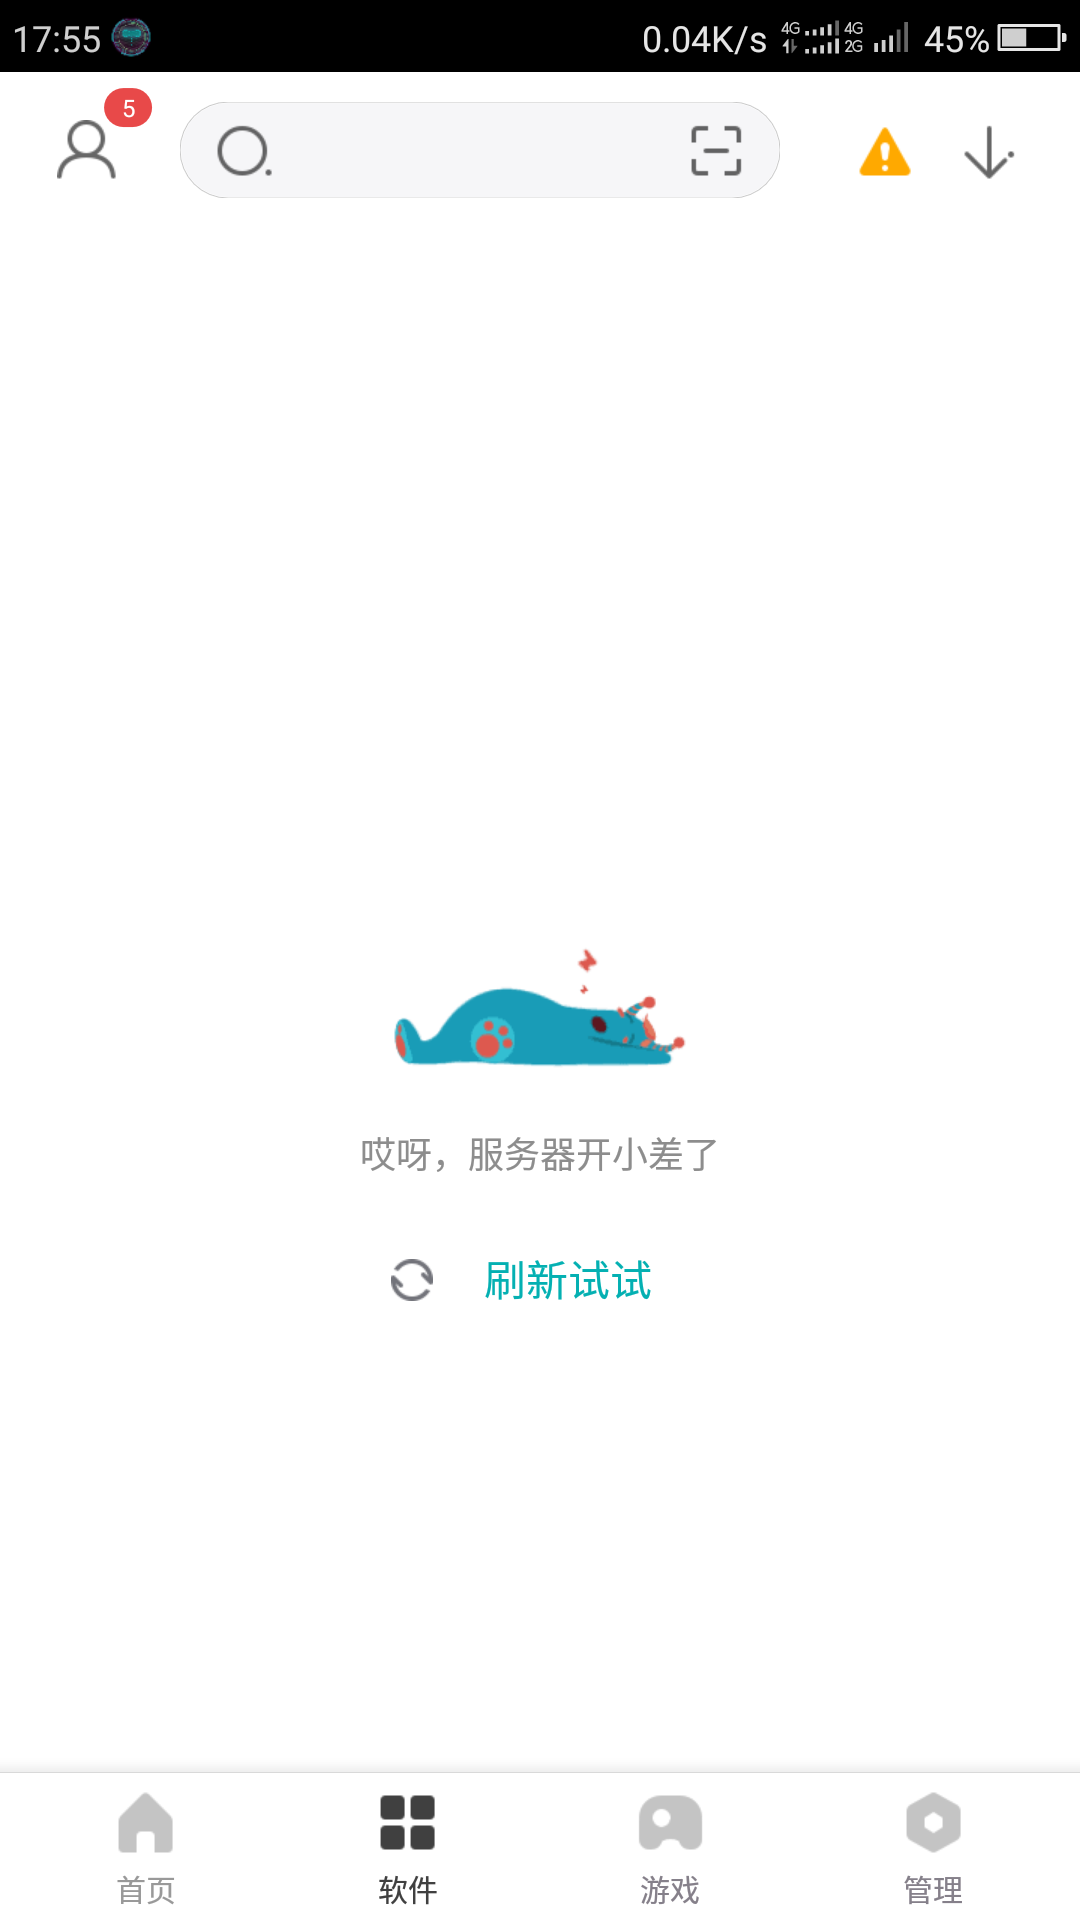 Screenshot_2019-09-26-17-55-43.png